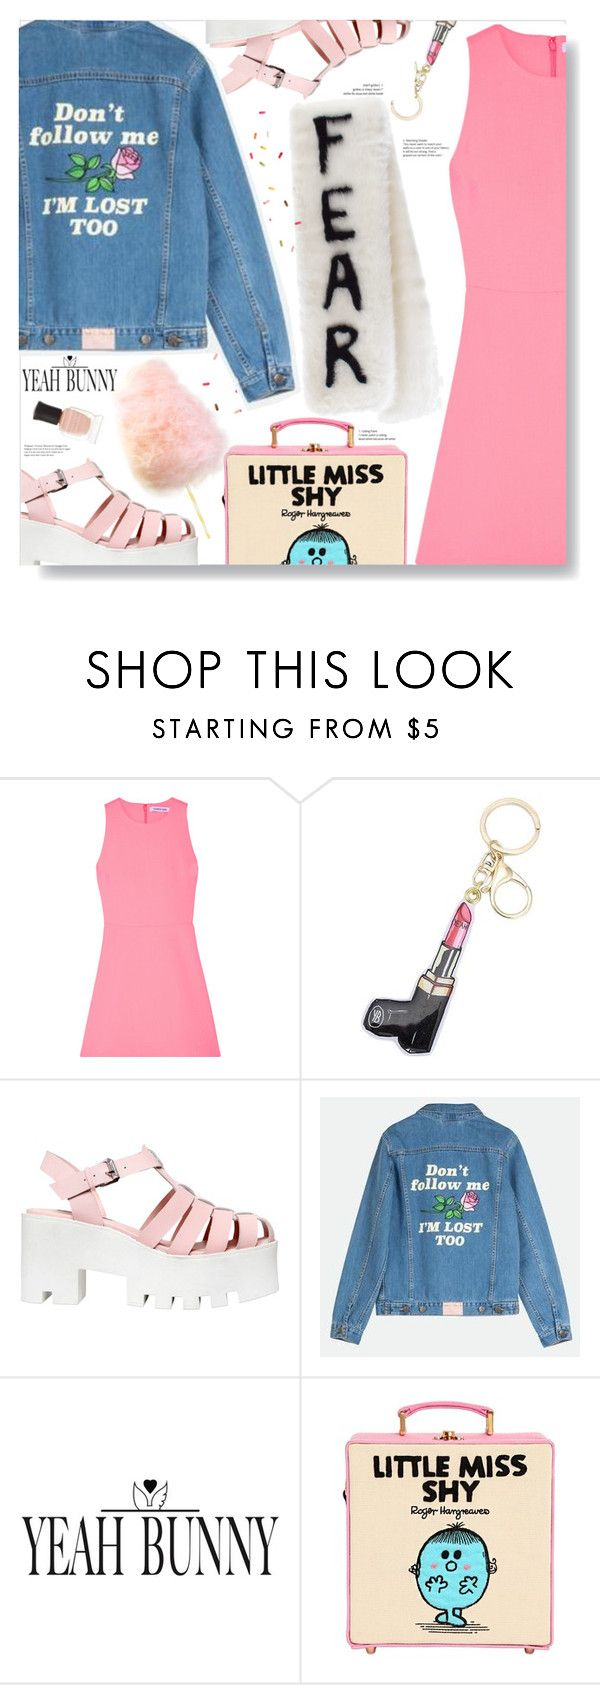 """YEAHBUNNY"" by chocolate-addicted-angel ❤ liked on Polyvore featuring Elizabeth and James, Windsor Smith, Yeah Bunny, Olympia Le-Tan, VFiles and Deborah Lippmann"